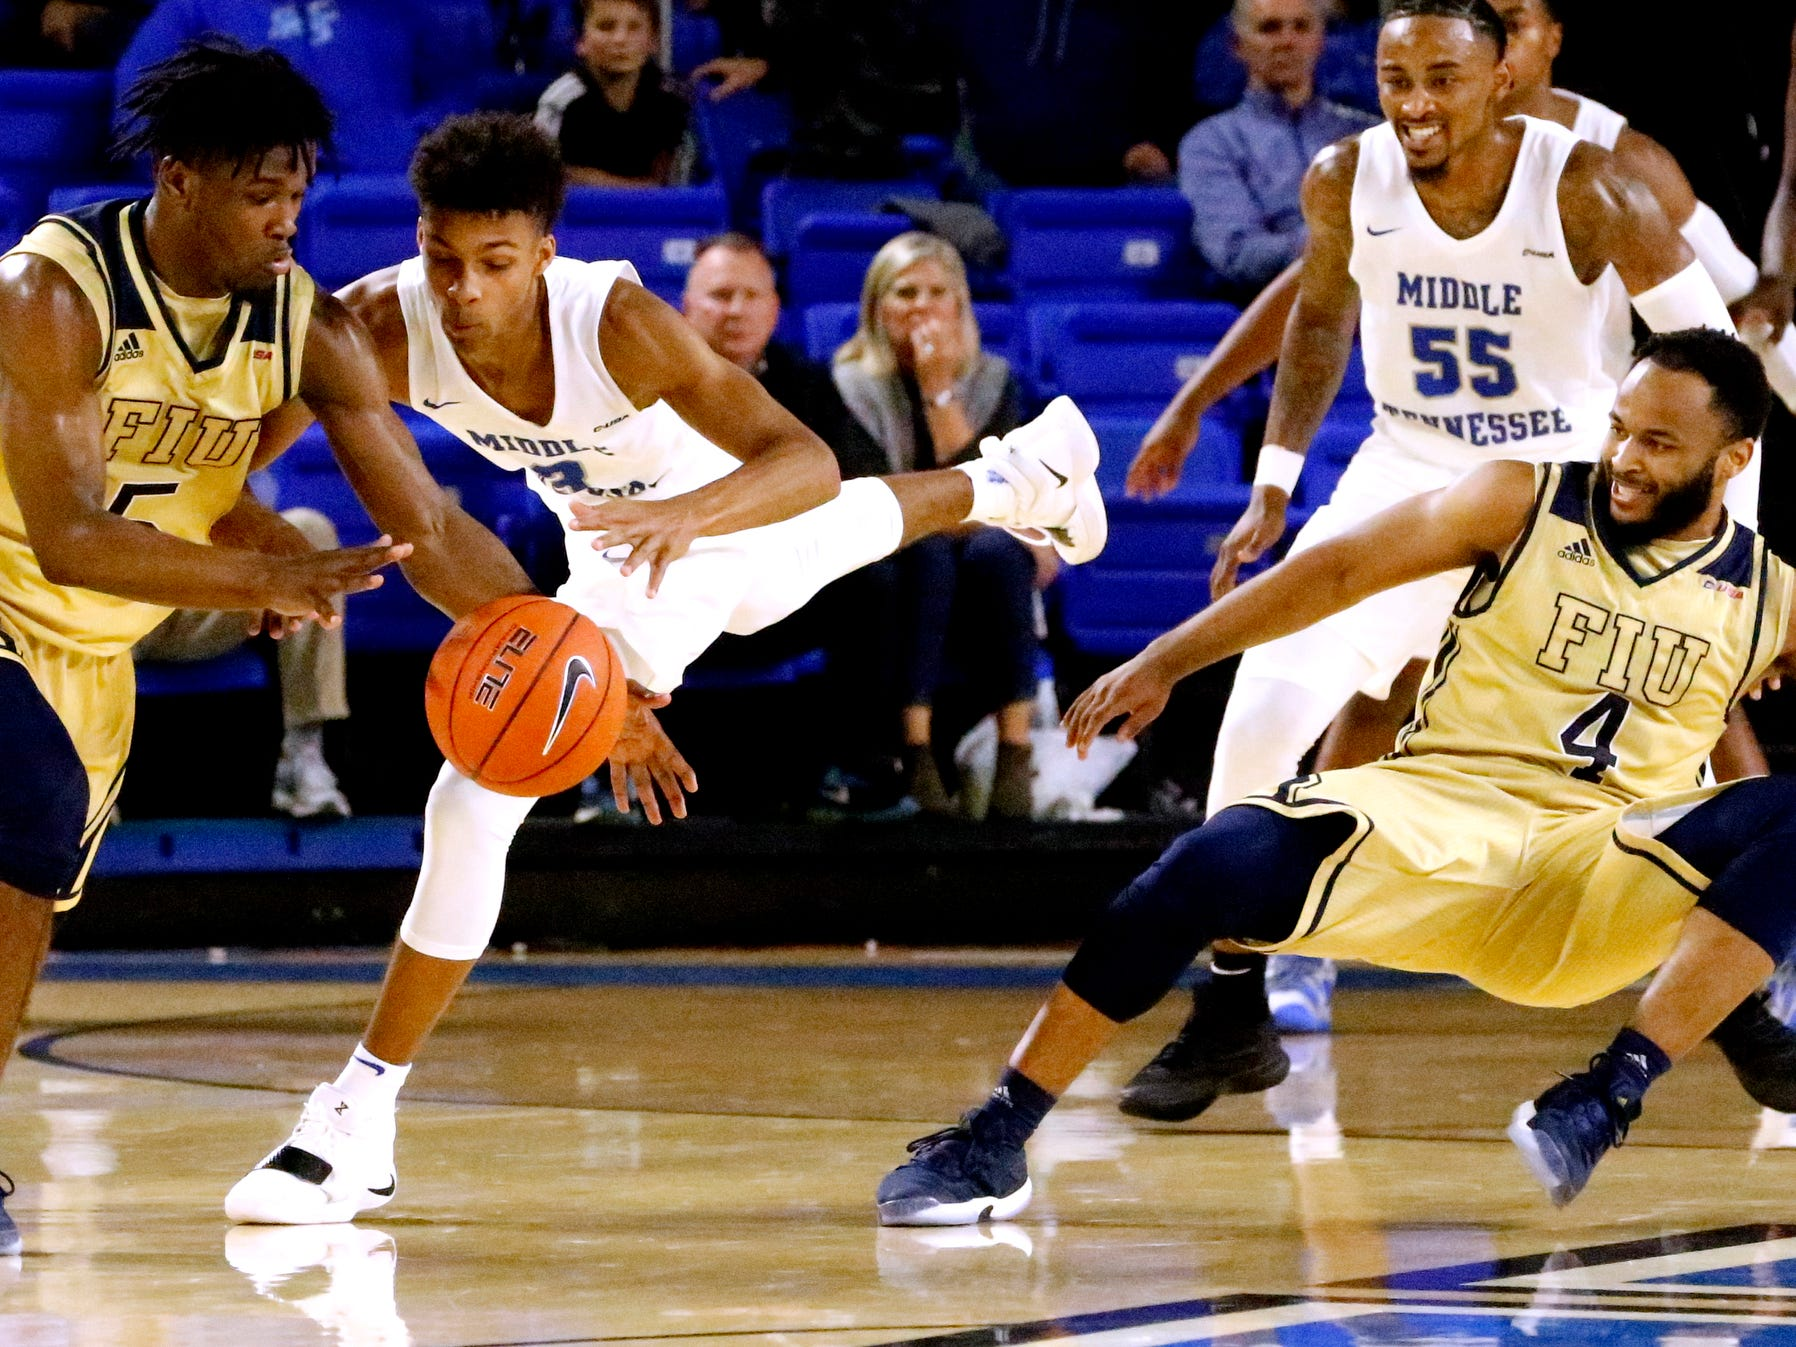 MTSU's guard Donovan Sims (3) steals the ball away rom FIU's guard Brian Beard Jr. (4) only to have it re stolen by FIU's guard Antonio Daye Jr. (5) on Thursday Jan. 3, 2019, at MTSU.